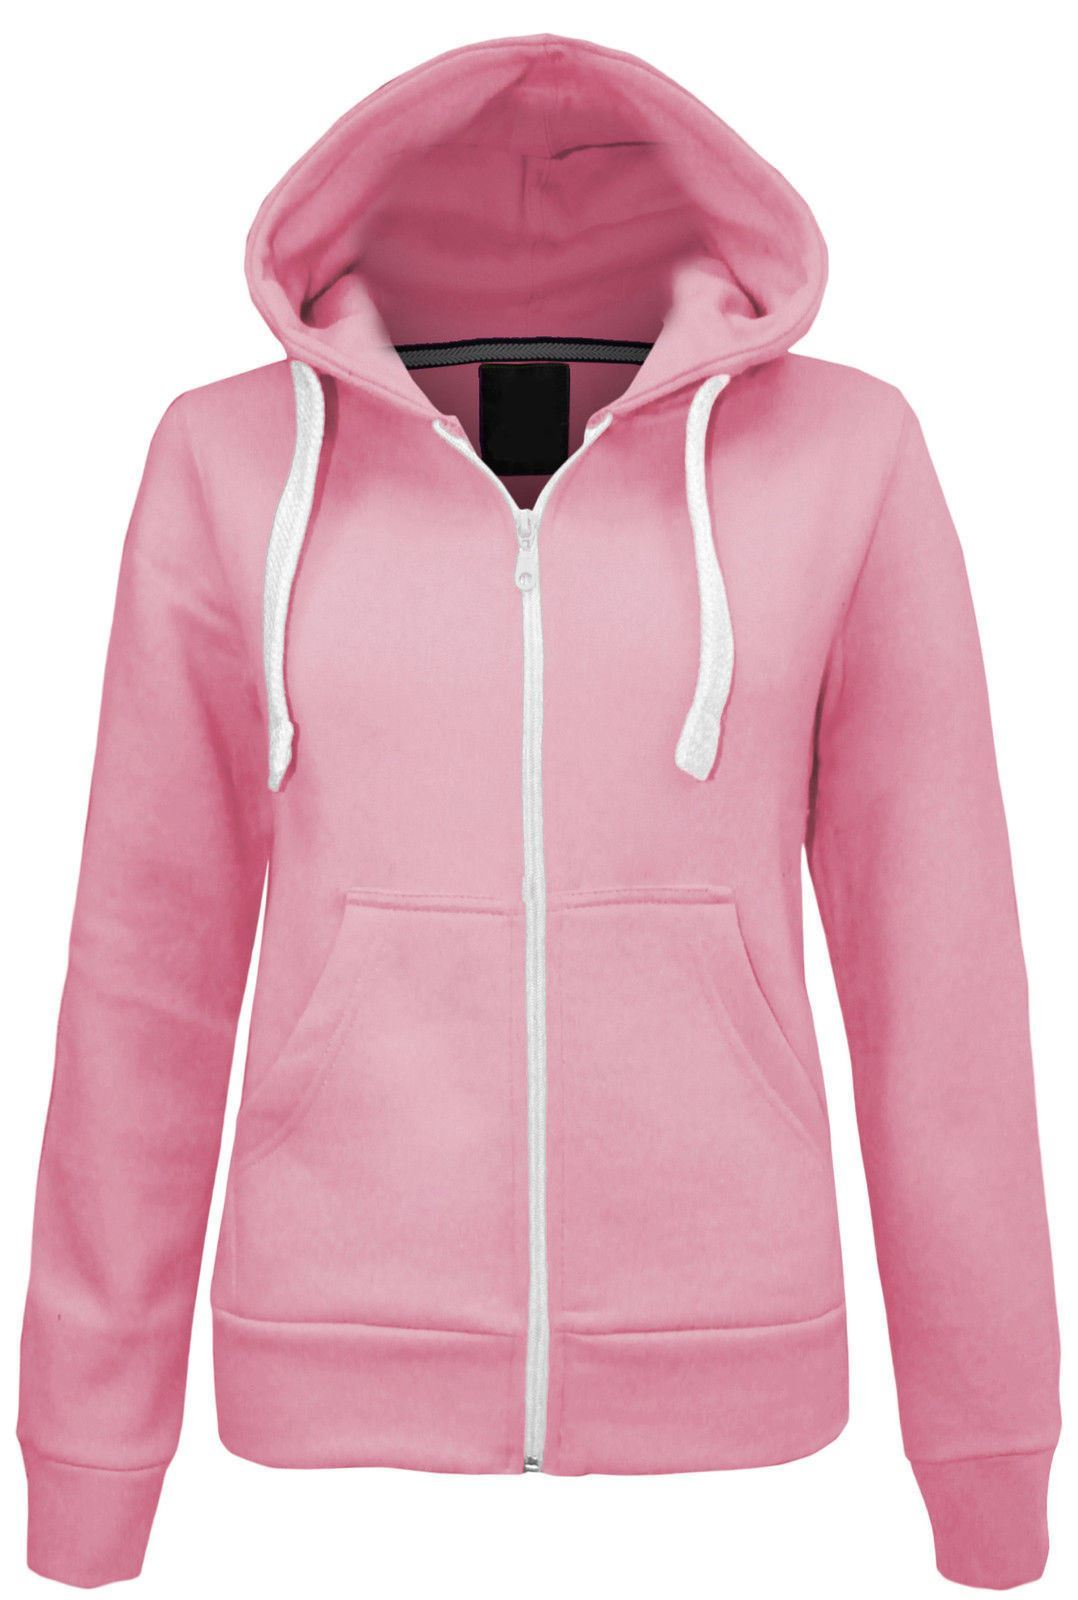 Buy the latest zip up hoodie 4xl cheap shop fashion style with free shipping, and check out our daily updated new arrival zip up hoodie 4xl at learn-islam.gq